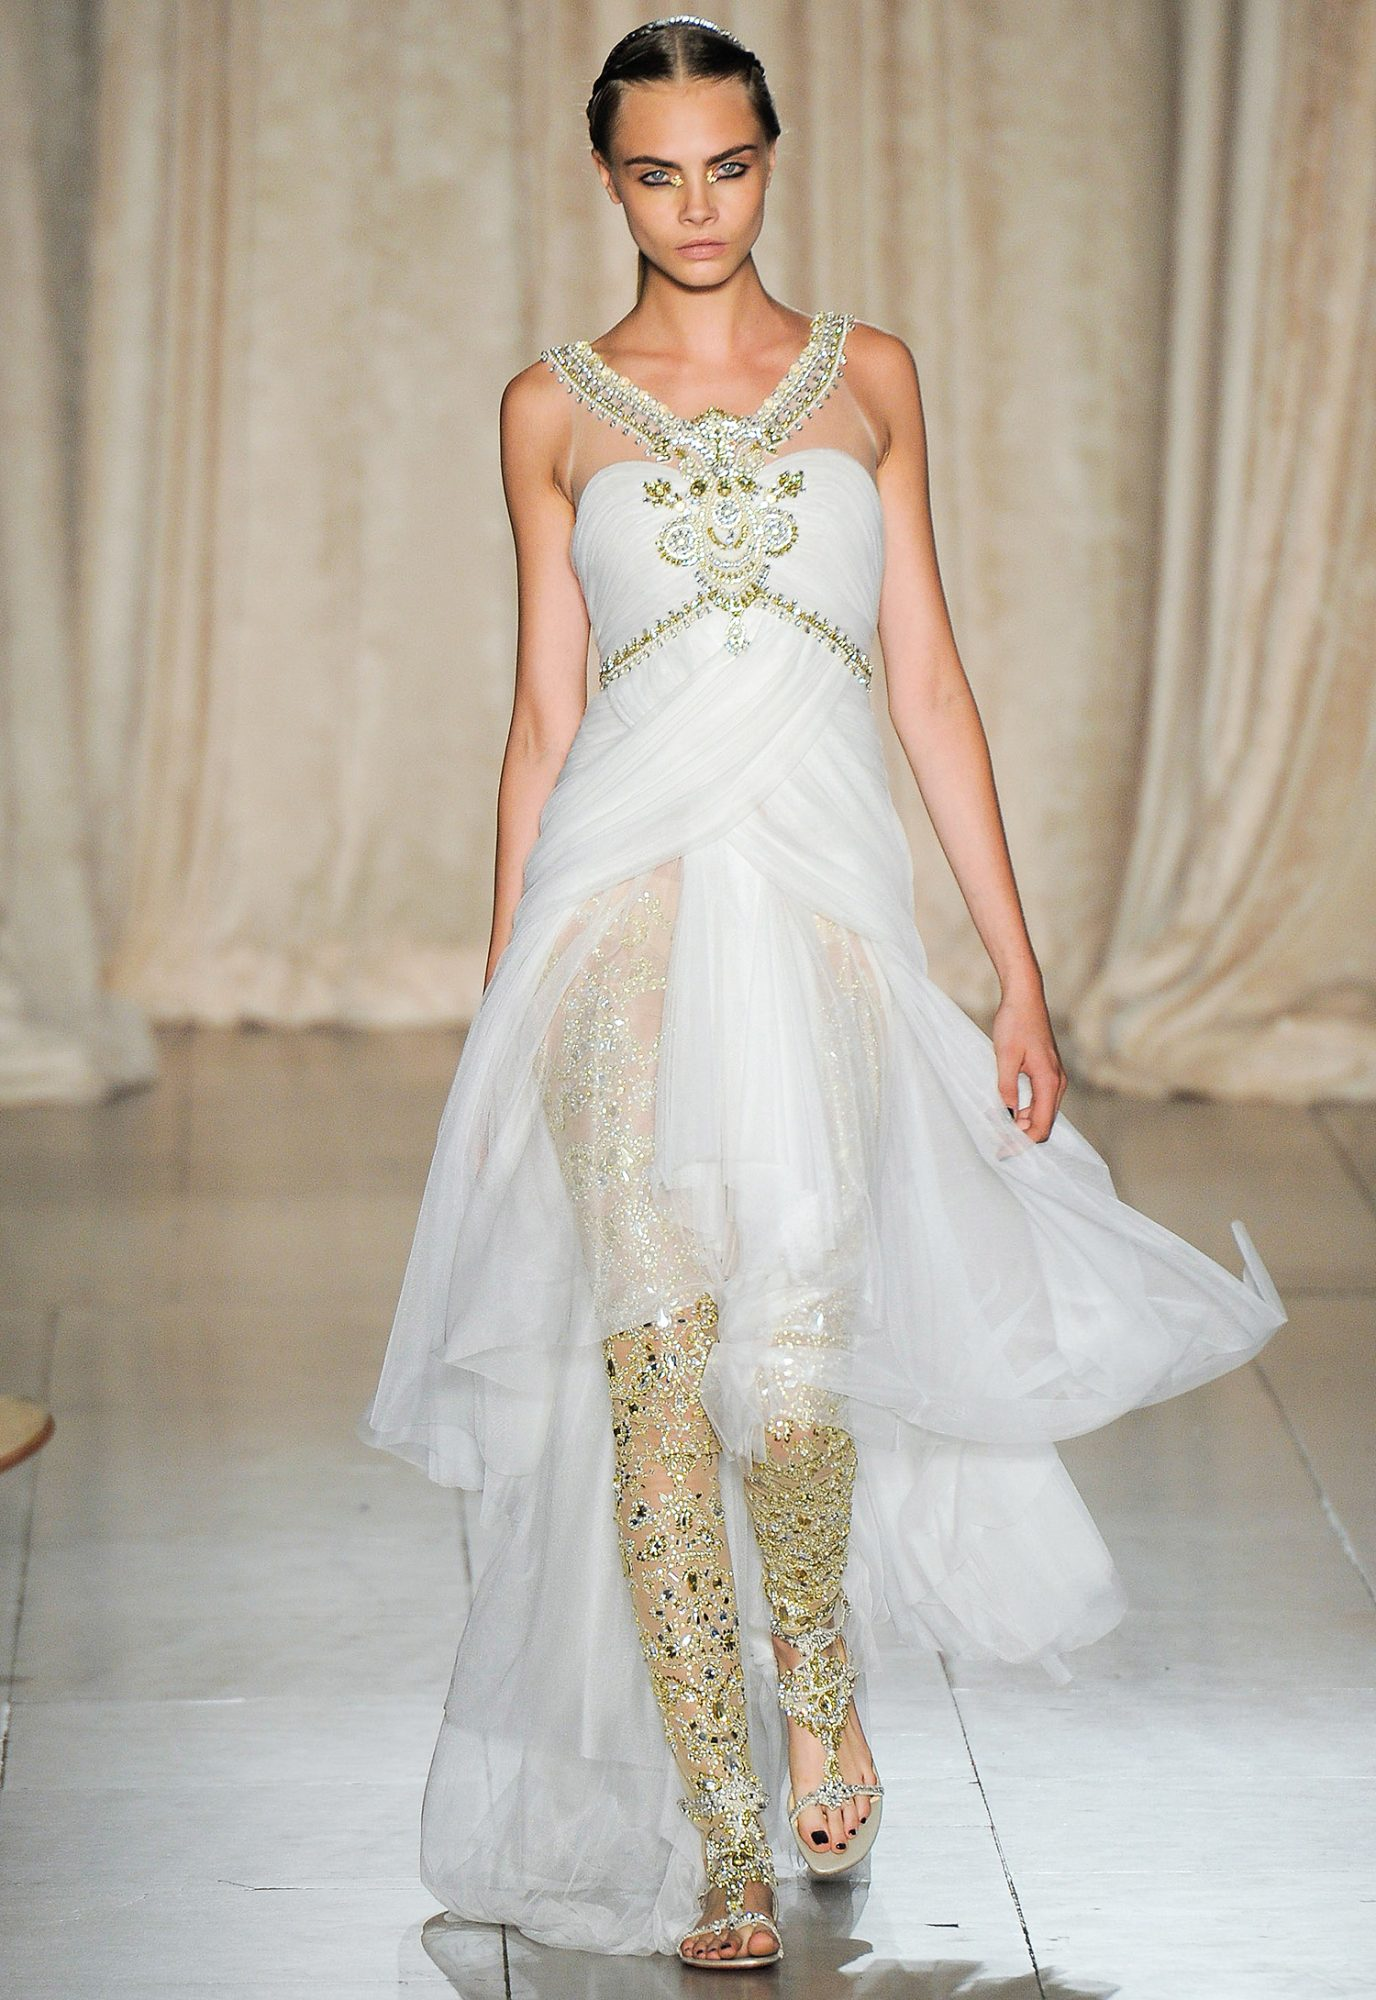 Cara Delevingne at Marchesa 2013